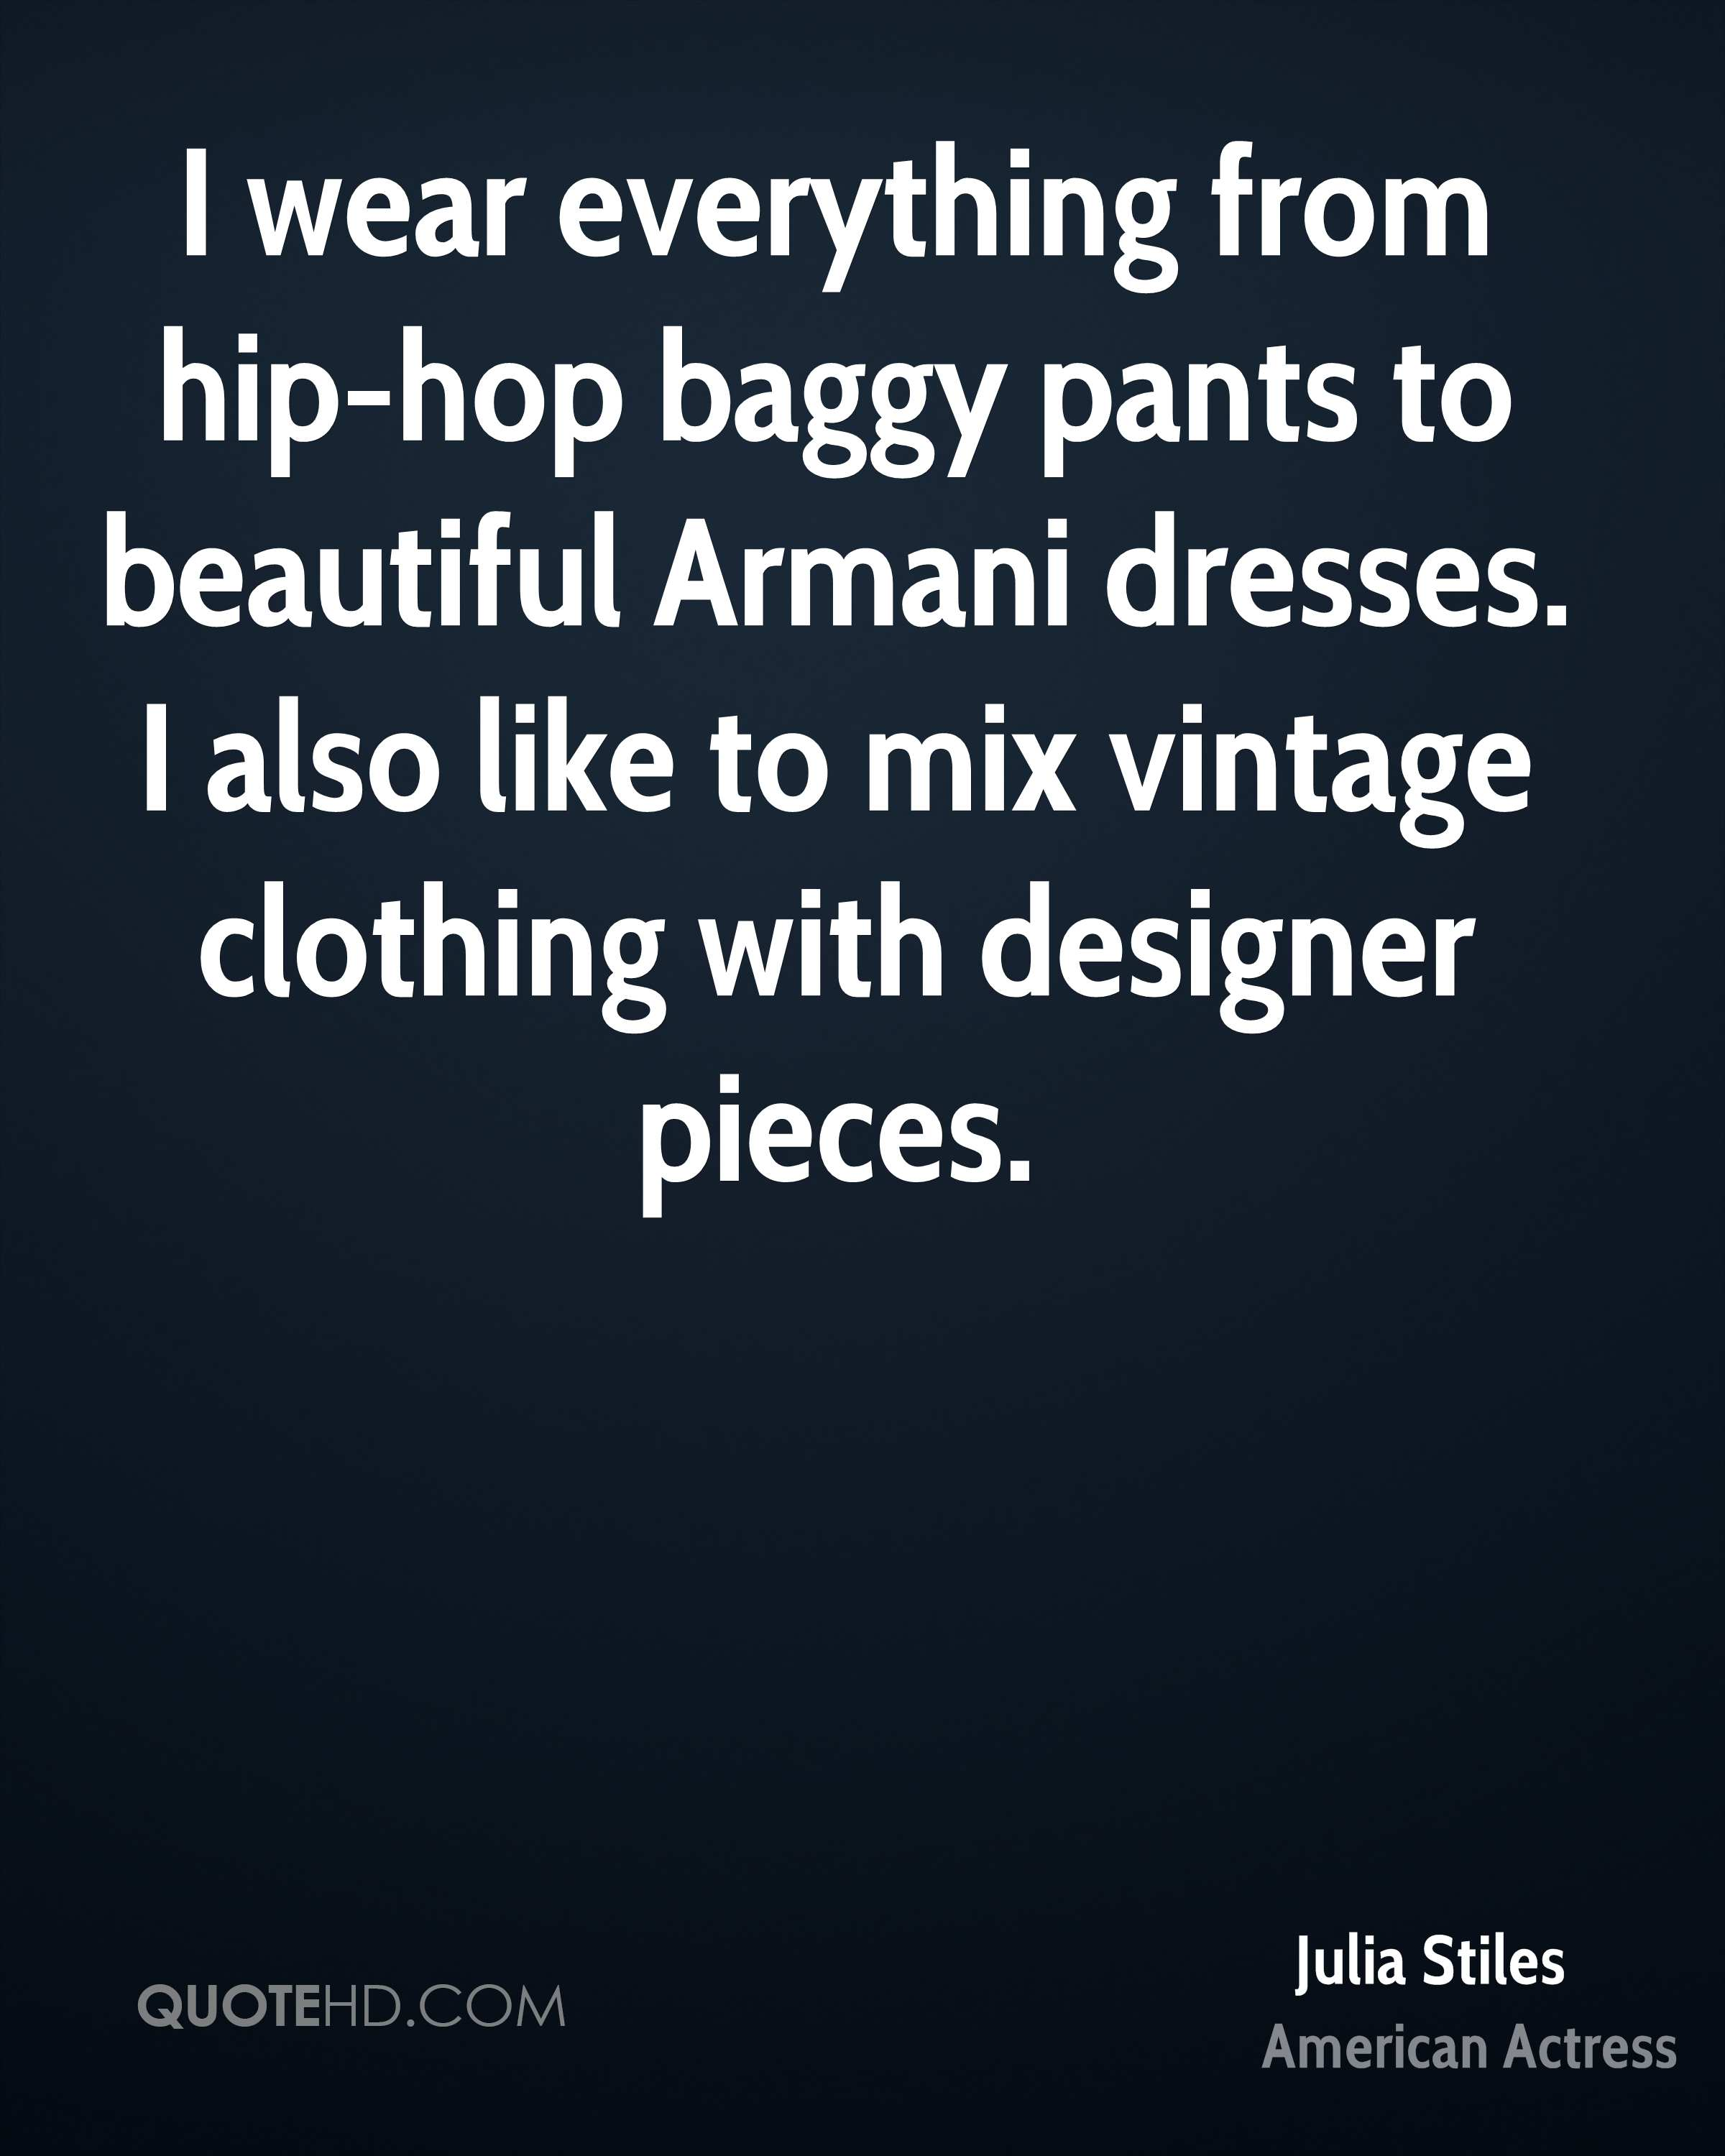 I wear everything from hip-hop baggy pants to beautiful Armani dresses. I also like to mix vintage clothing with designer pieces.